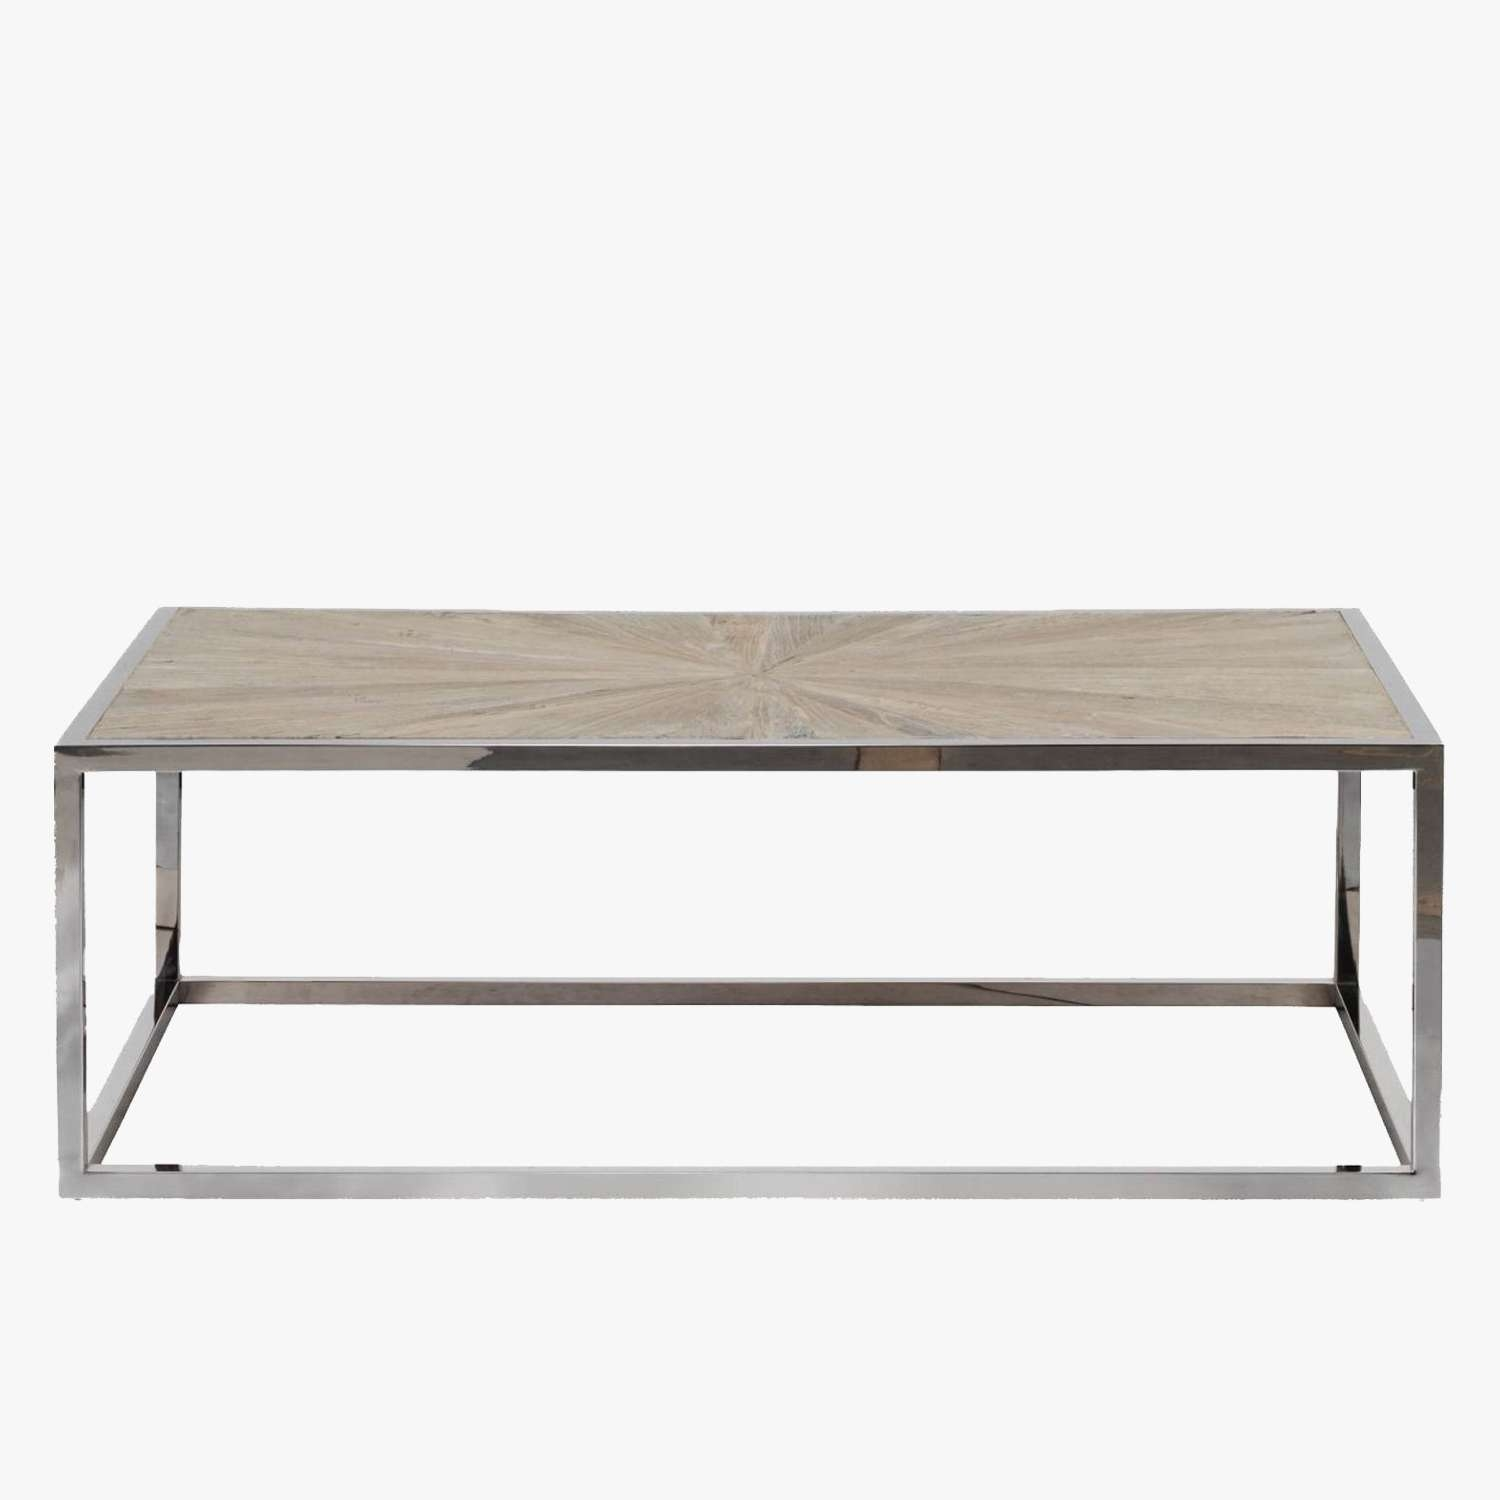 Coffee Tables : Bear Coffee Table With Glass Top Industrial Rustic With Fashionable Coffee Tables With Chrome Legs (View 2 of 20)